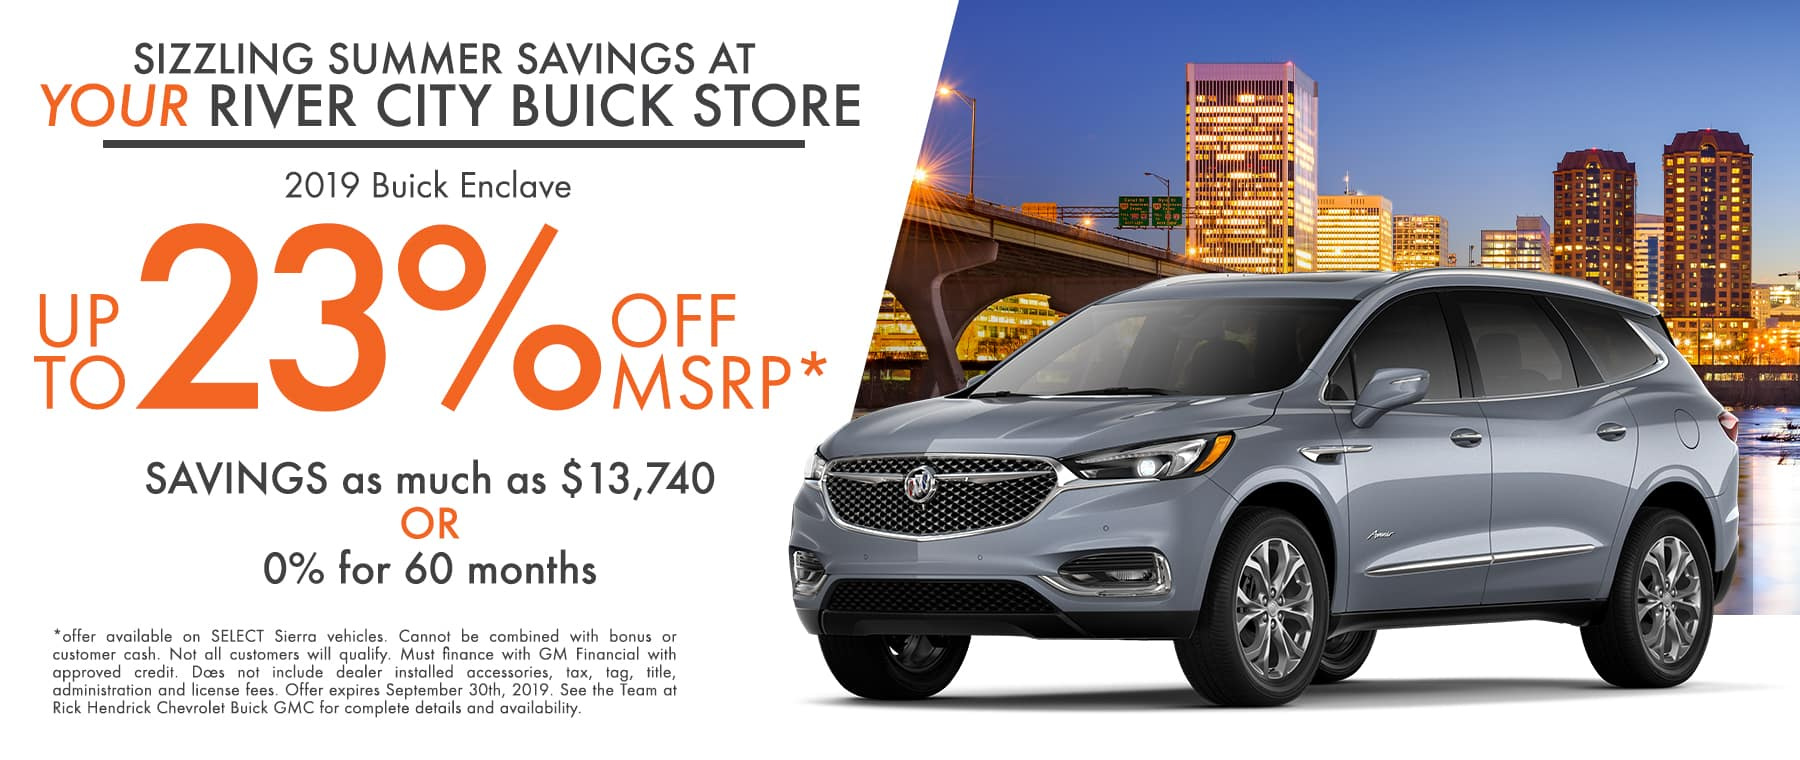 Big savings on the Buick Enclave